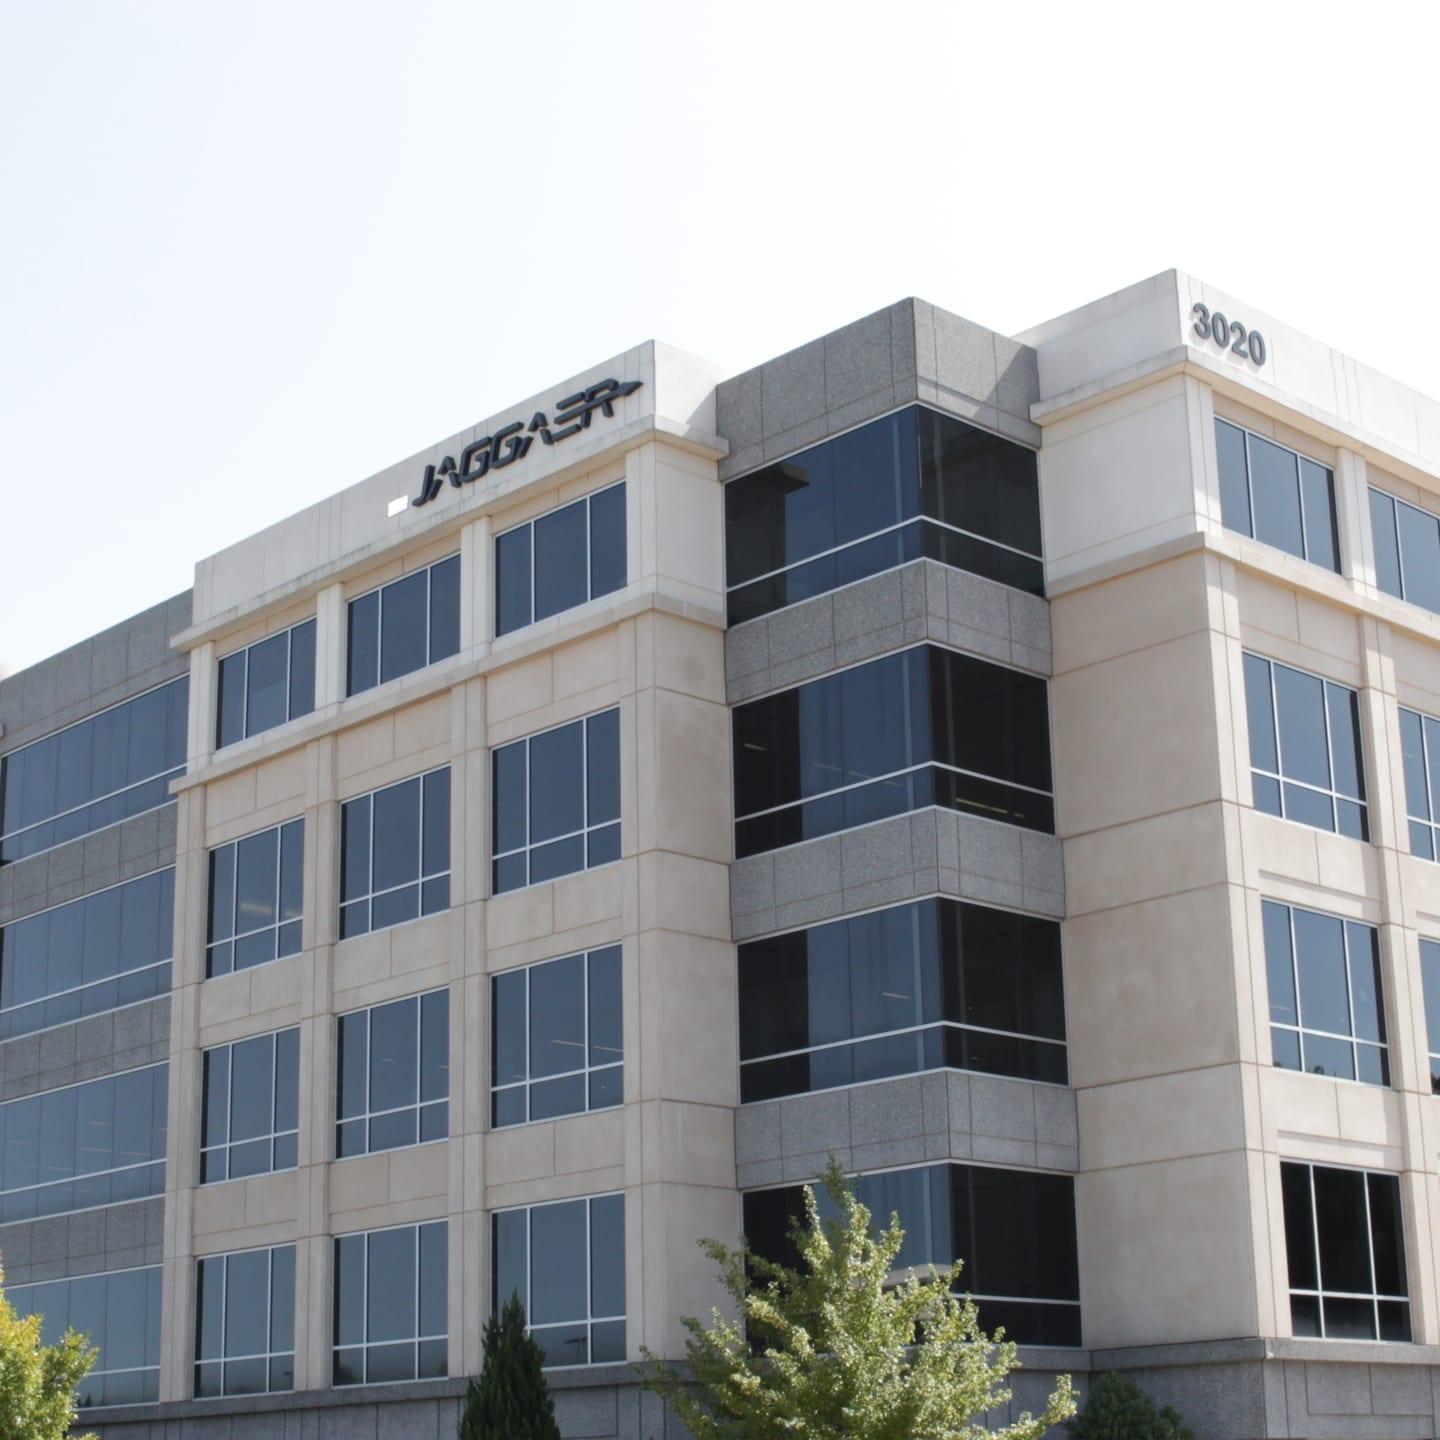 JAGGAER Headquarters in Morrisville, NC